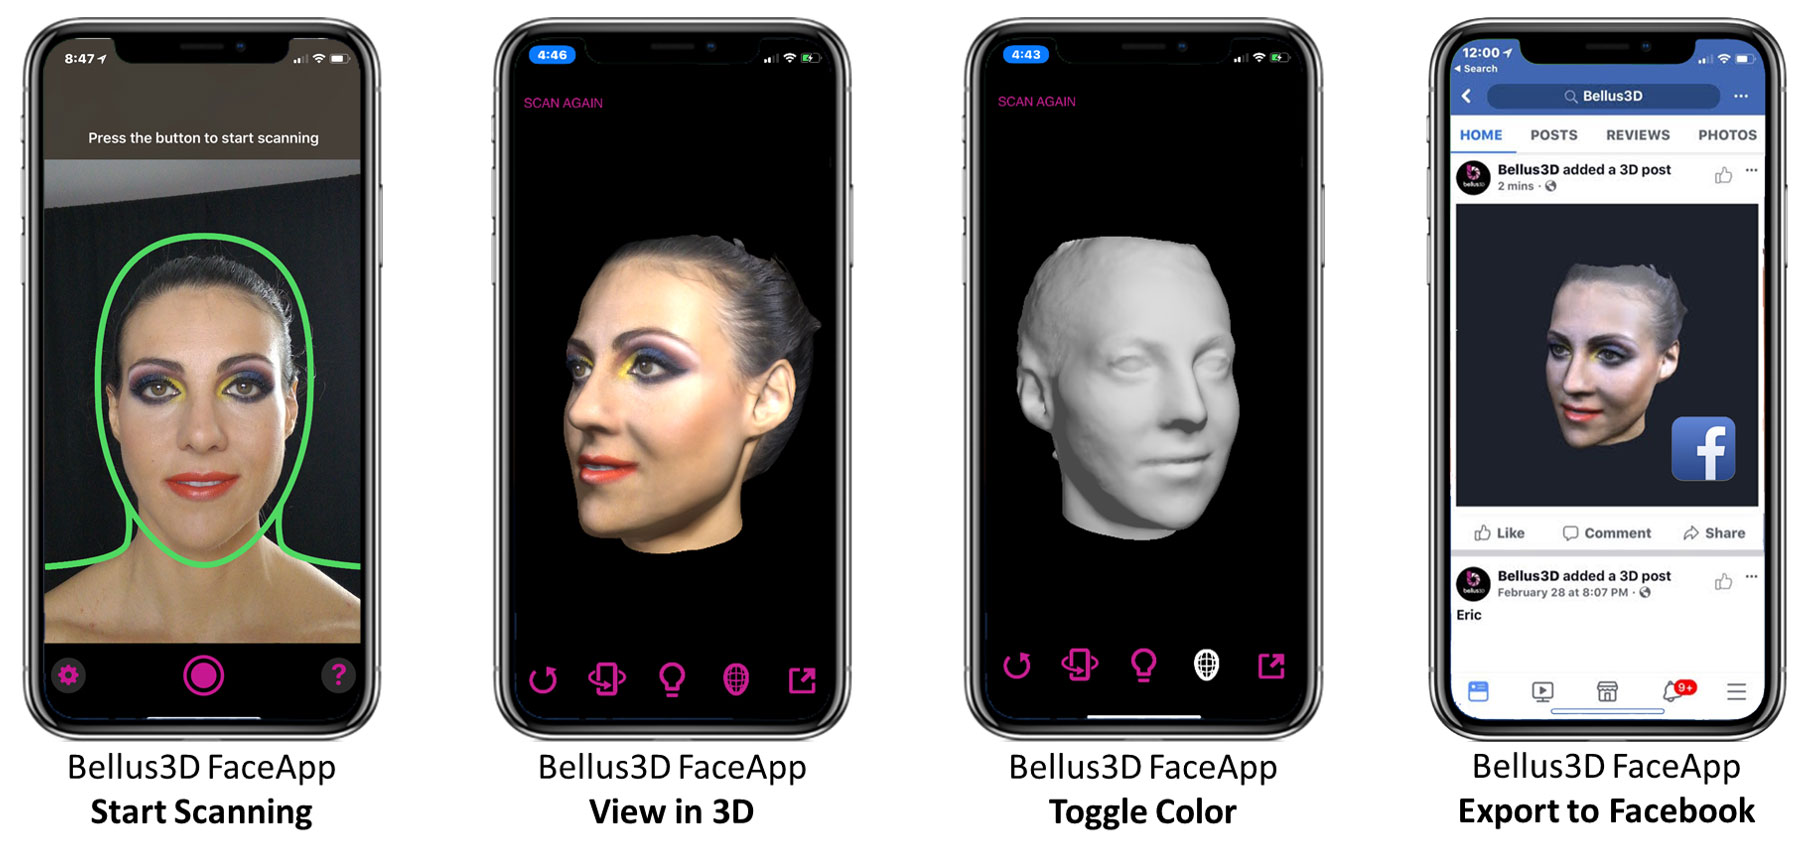 Bellus3D A Silicon Valley Startup That Last Year Launched 3D Face Scanning Accessory Camera For Android Smartphones Today Unveiled Its FaceApp IPhone X